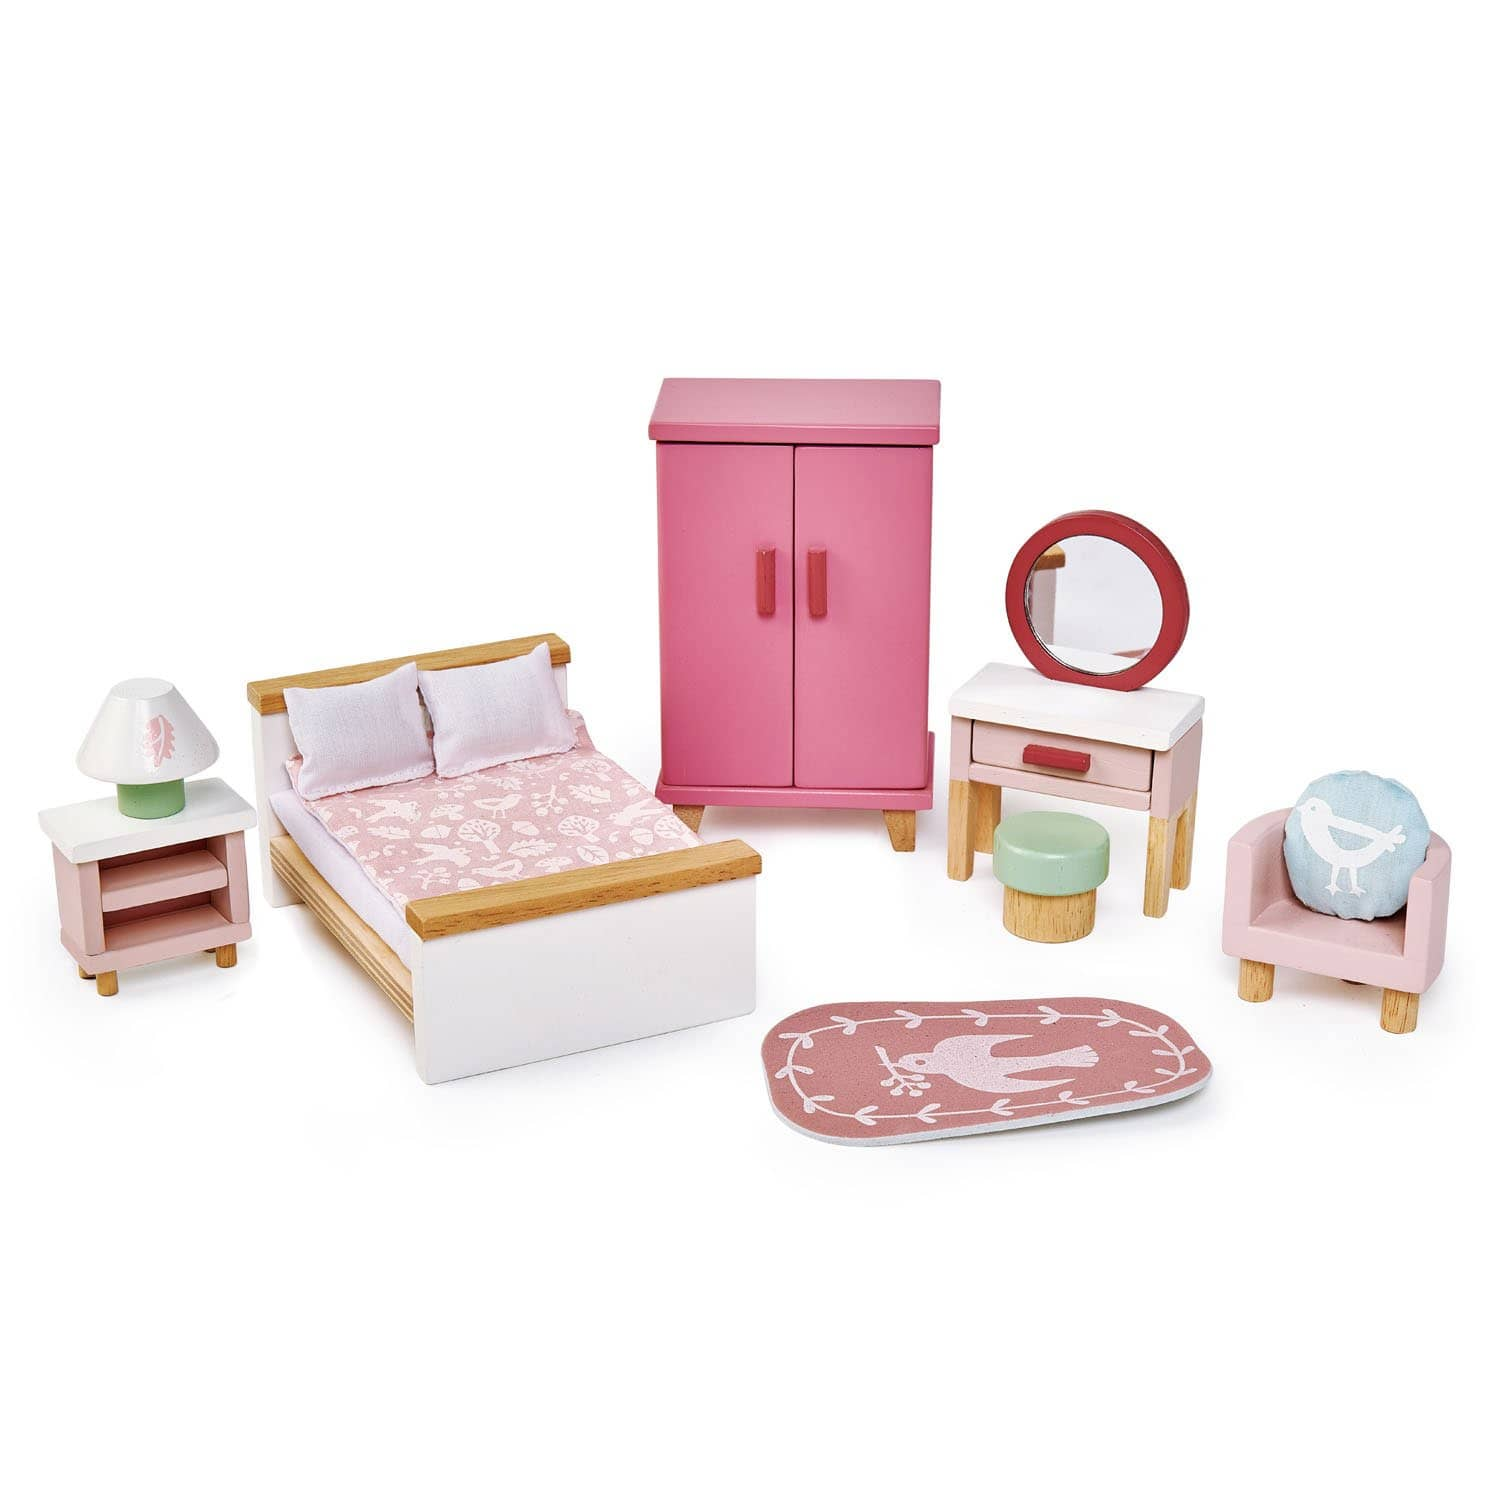 Dovetail Dollhouse Bedroom Furniture-Kidding Around NYC